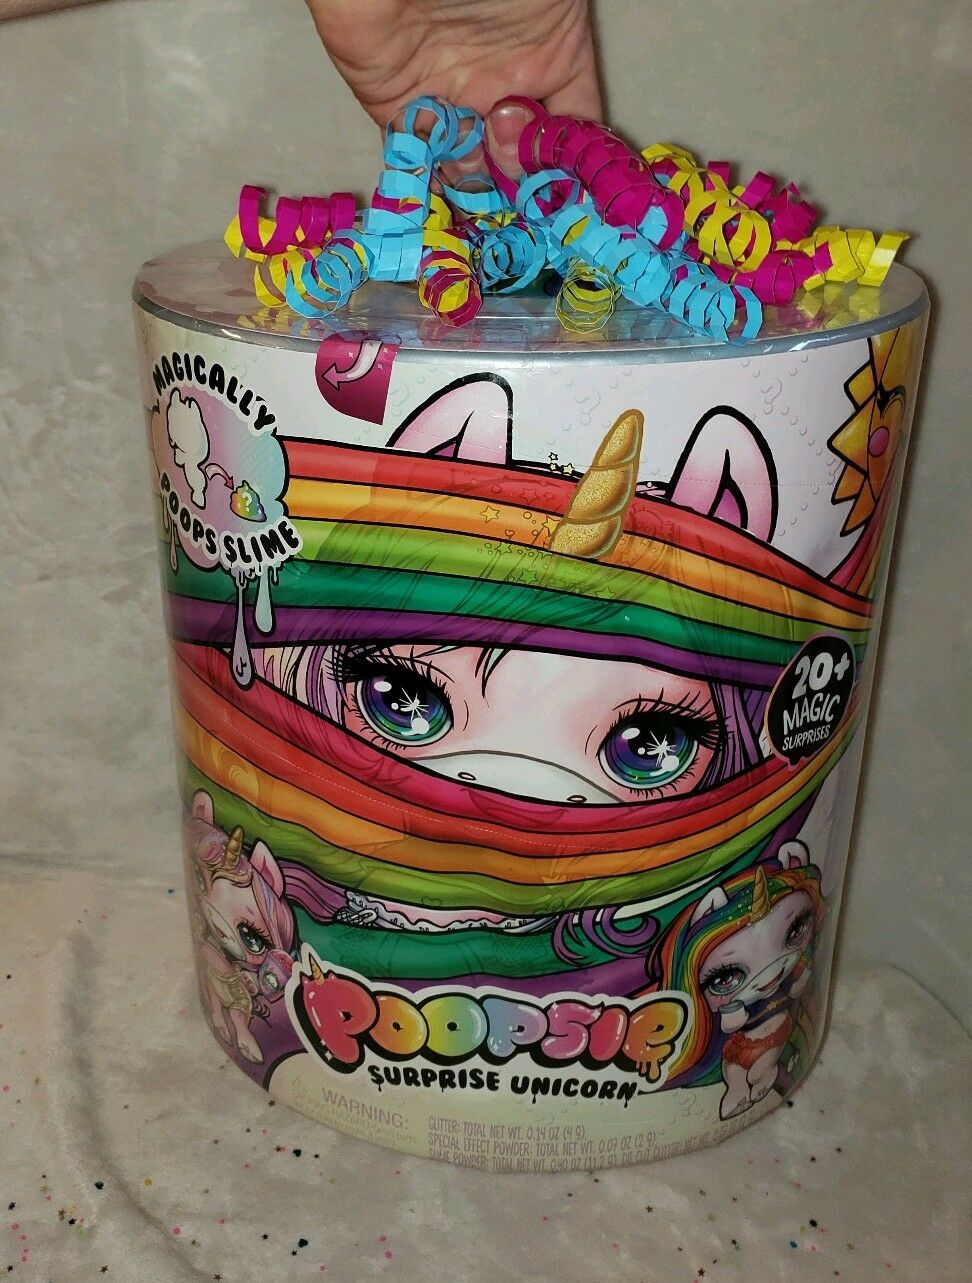 Poopsie Surprise Unicorn 20+ Magic Surprises Poops Slime BRAND BRAND BRAND NEW SEALED MGA 7aa1d4